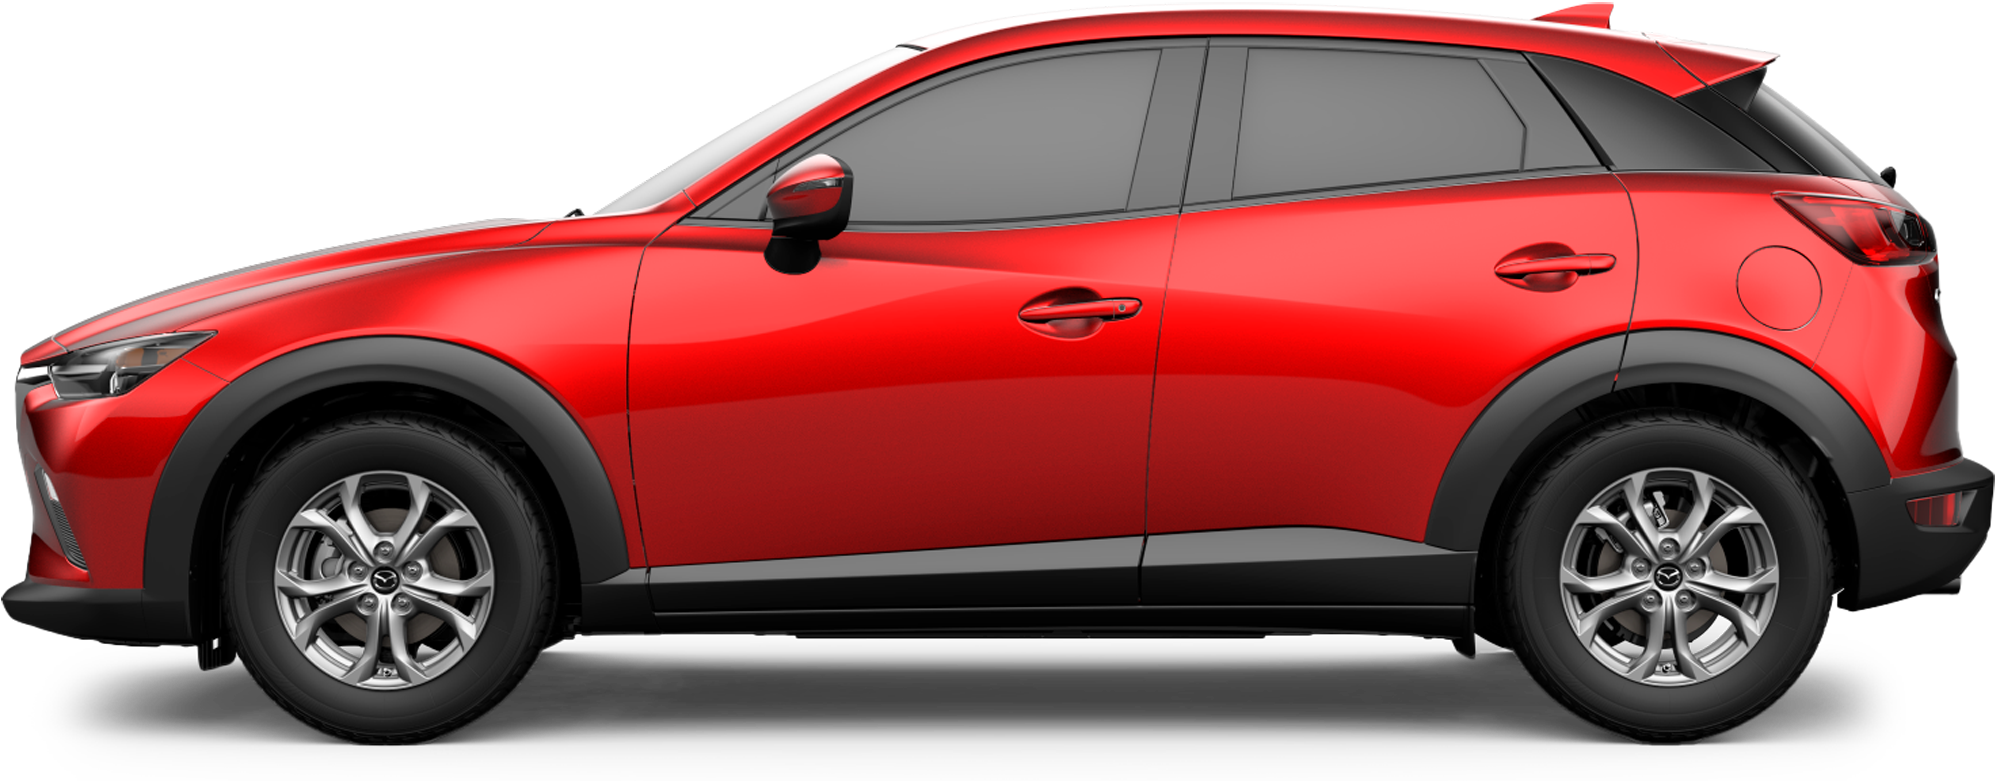 http://images.dealer.com/ddc/vehicles/2021/Mazda/CX-3/SUV/trim_Sport_c01a5c/perspective/side-left/2021_76.png